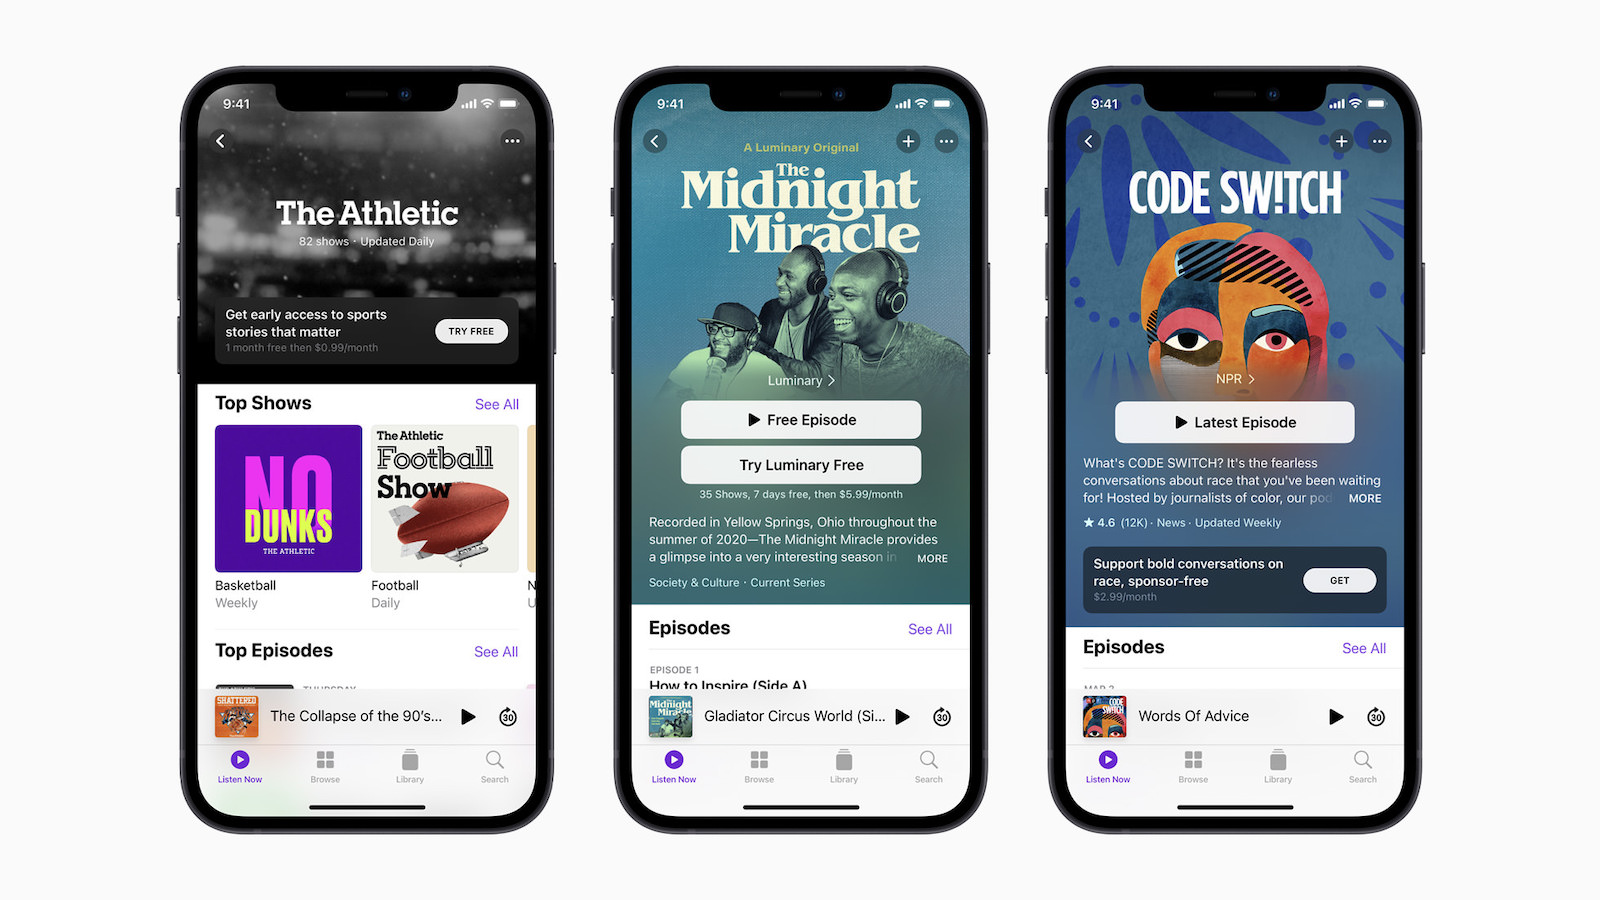 Apple iphone12 podcasts codeswitch theathletic midnightmiracle 042021